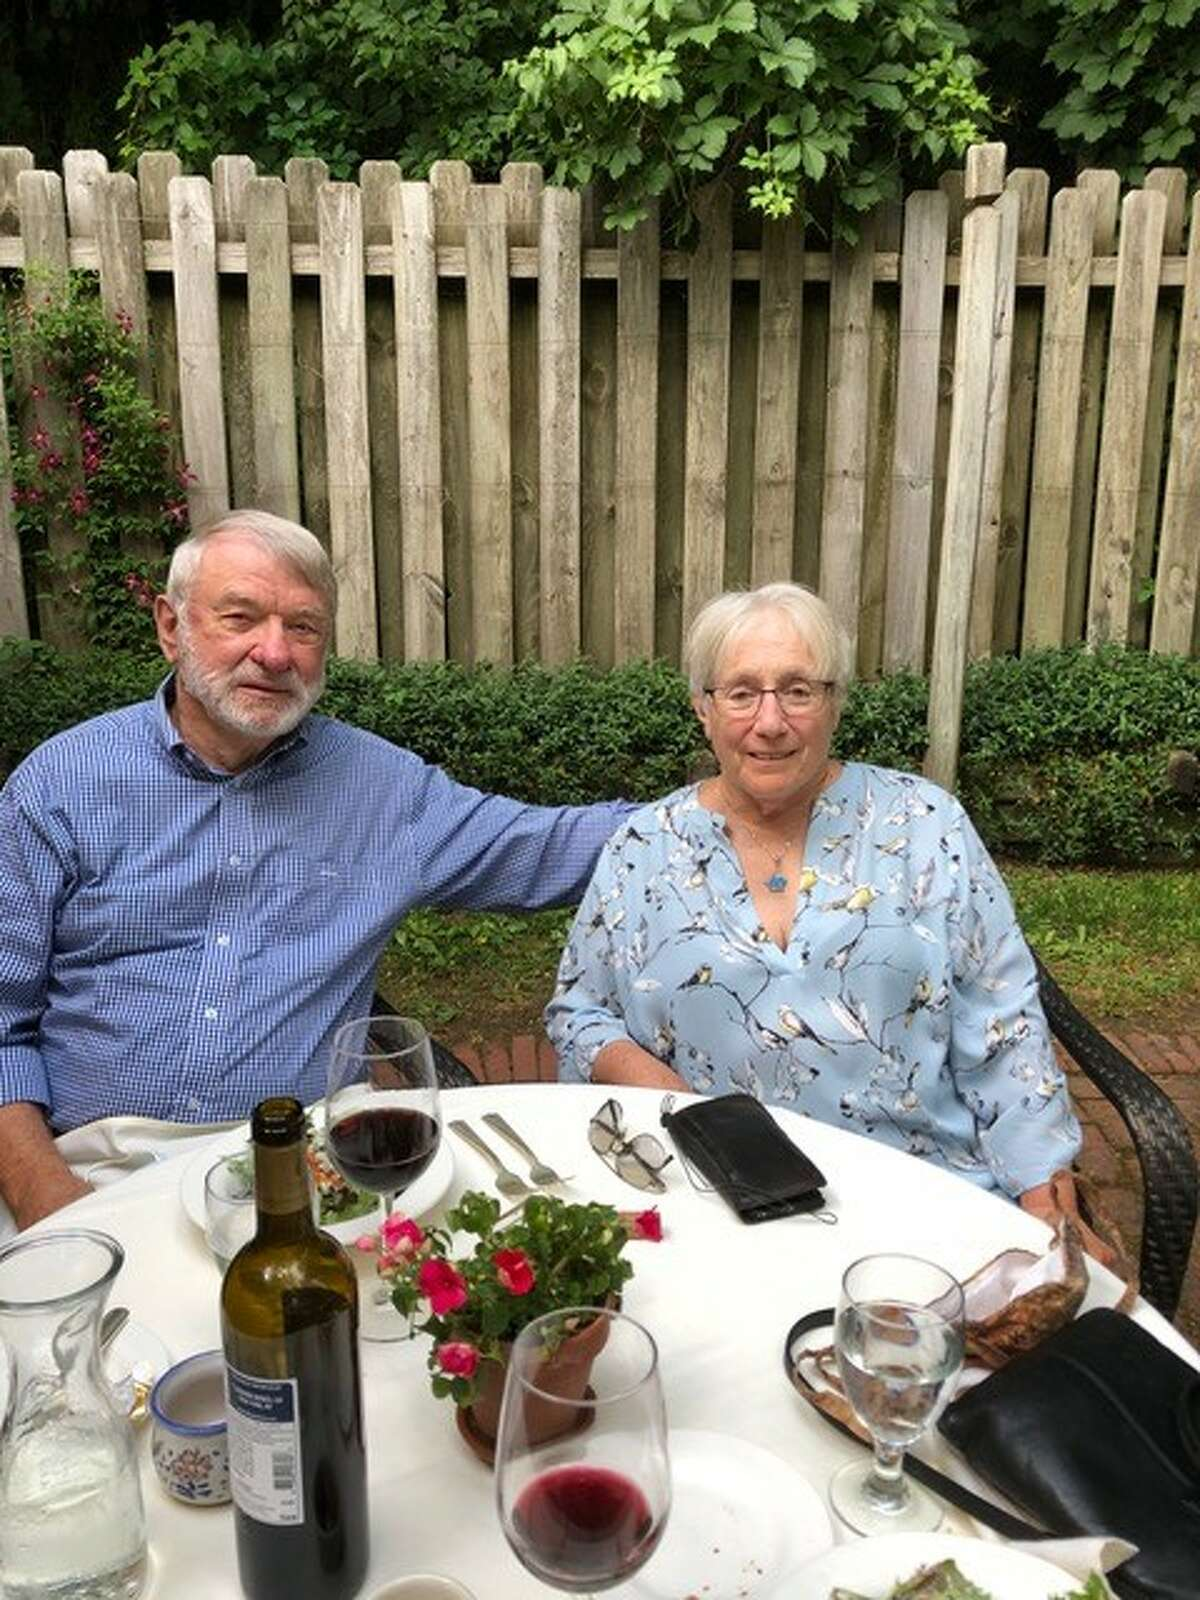 Dave and Lynne Harding at the Swiss Hutte restaurant in Hillsdale for their 55th anniversary